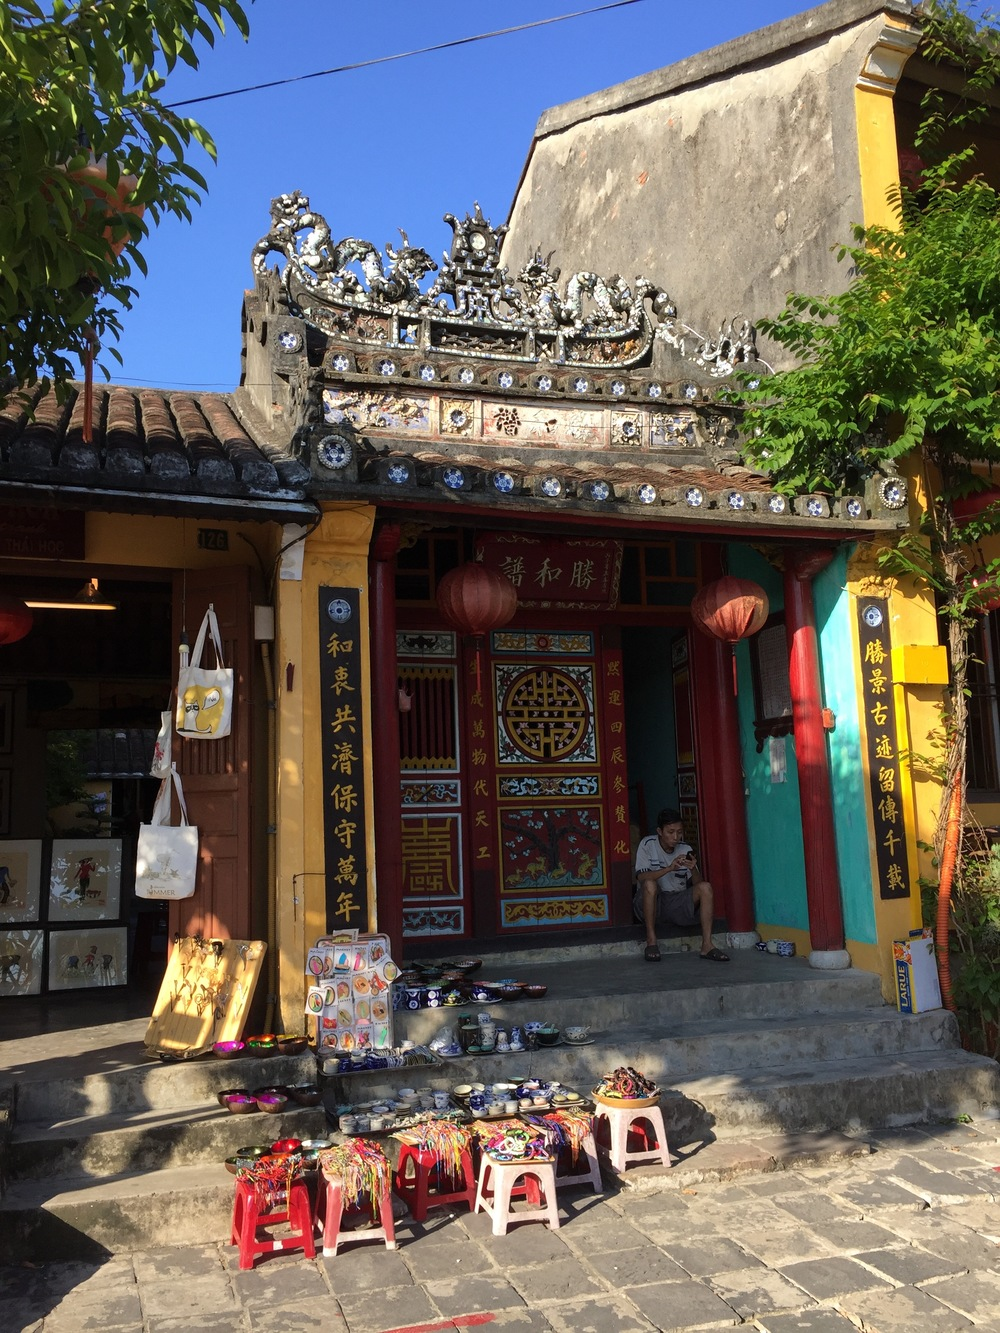 The picturesque city of Hoi An is a thriving tourist destination, full of shops that oddly all contain the same inventory of merchandise for sale.